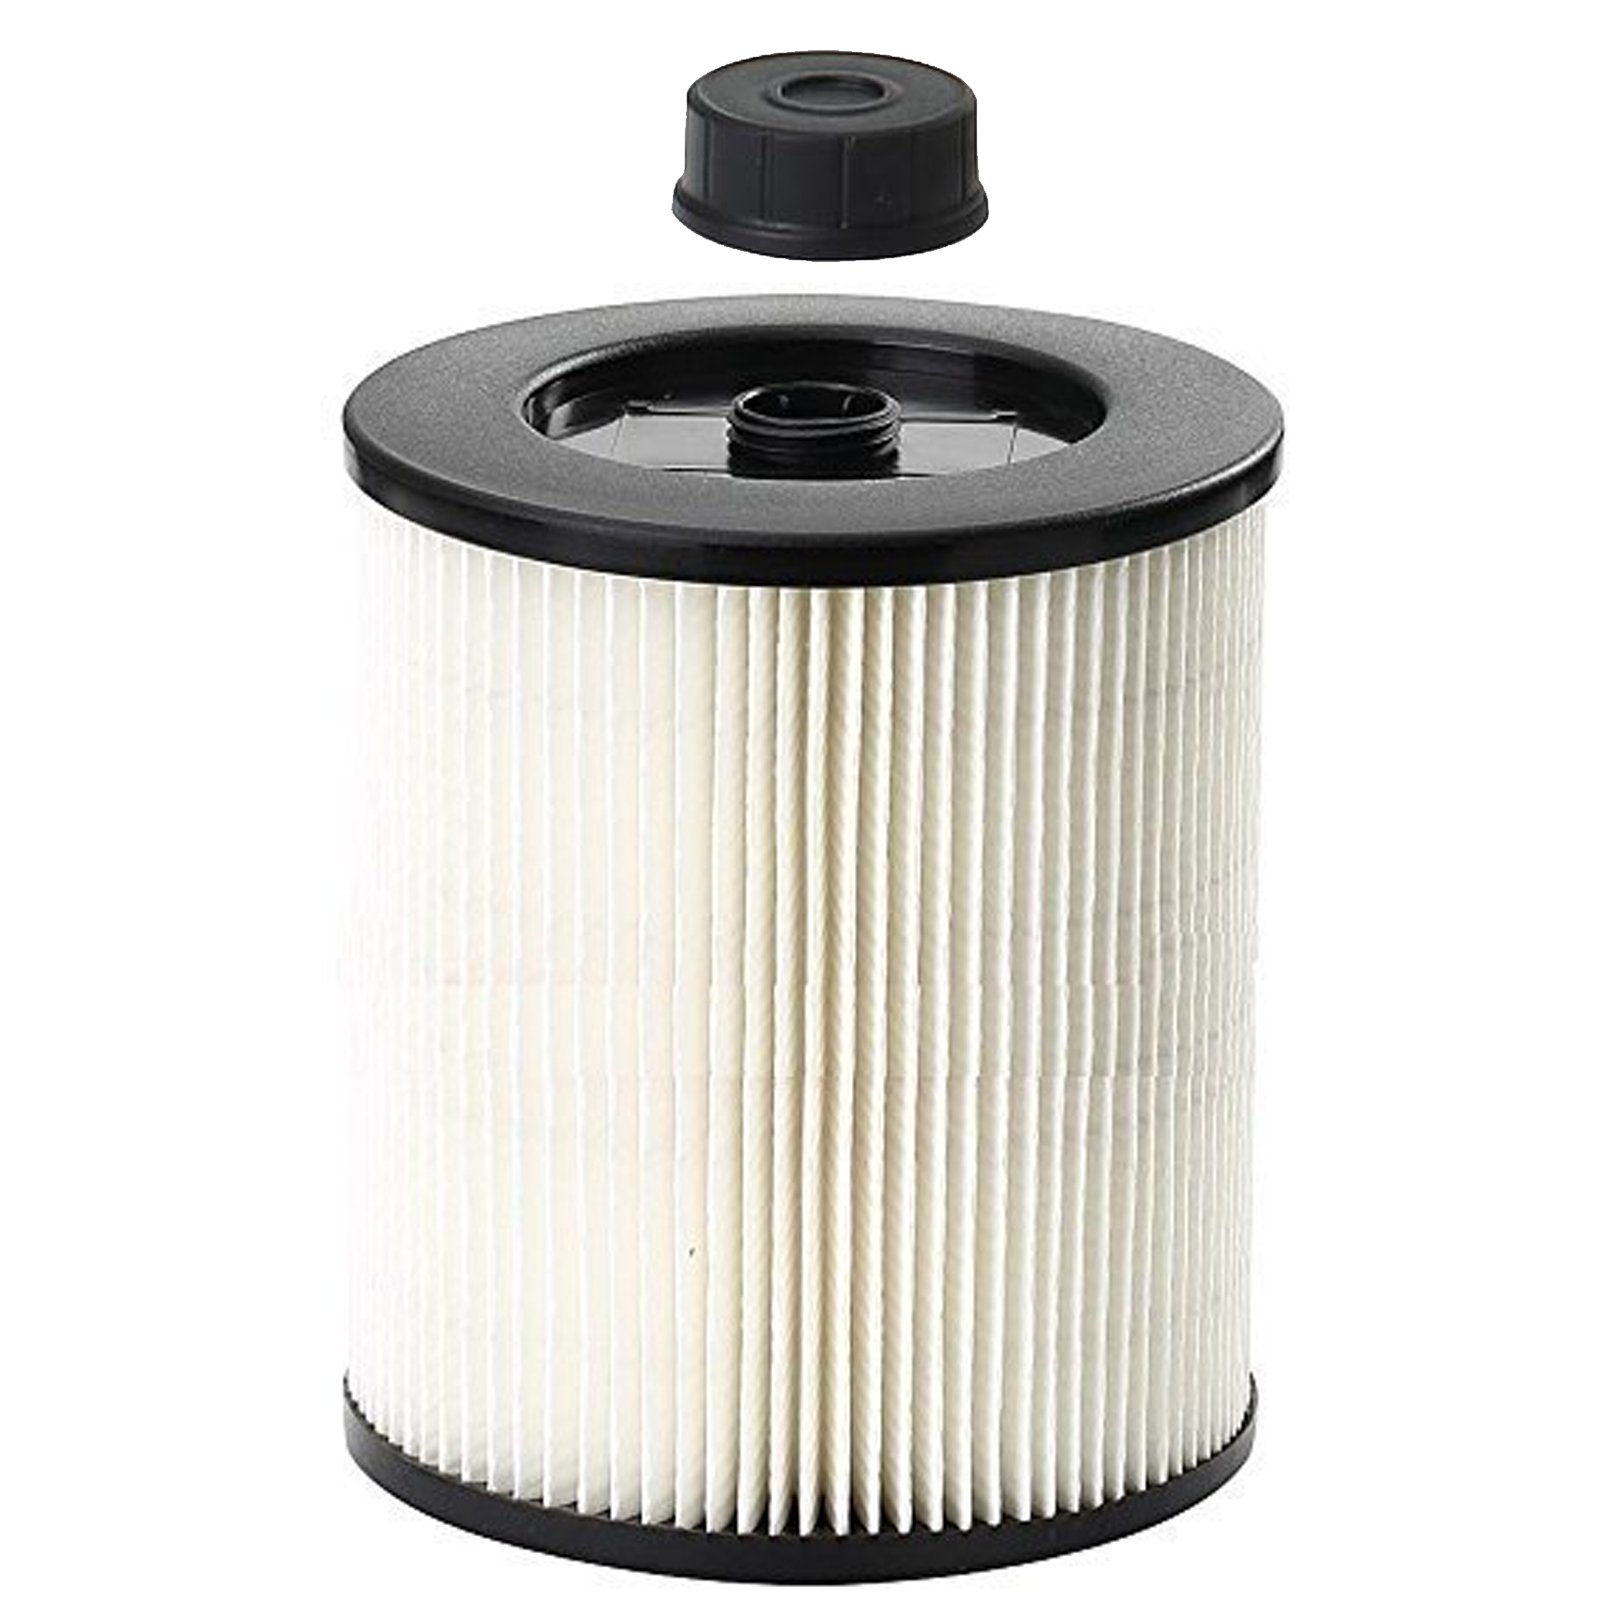 First4Spares Qualtex 9-17816 Filter with Cap Fits All Craftsman Vacuums 5 Gallons & Above by First4Spares